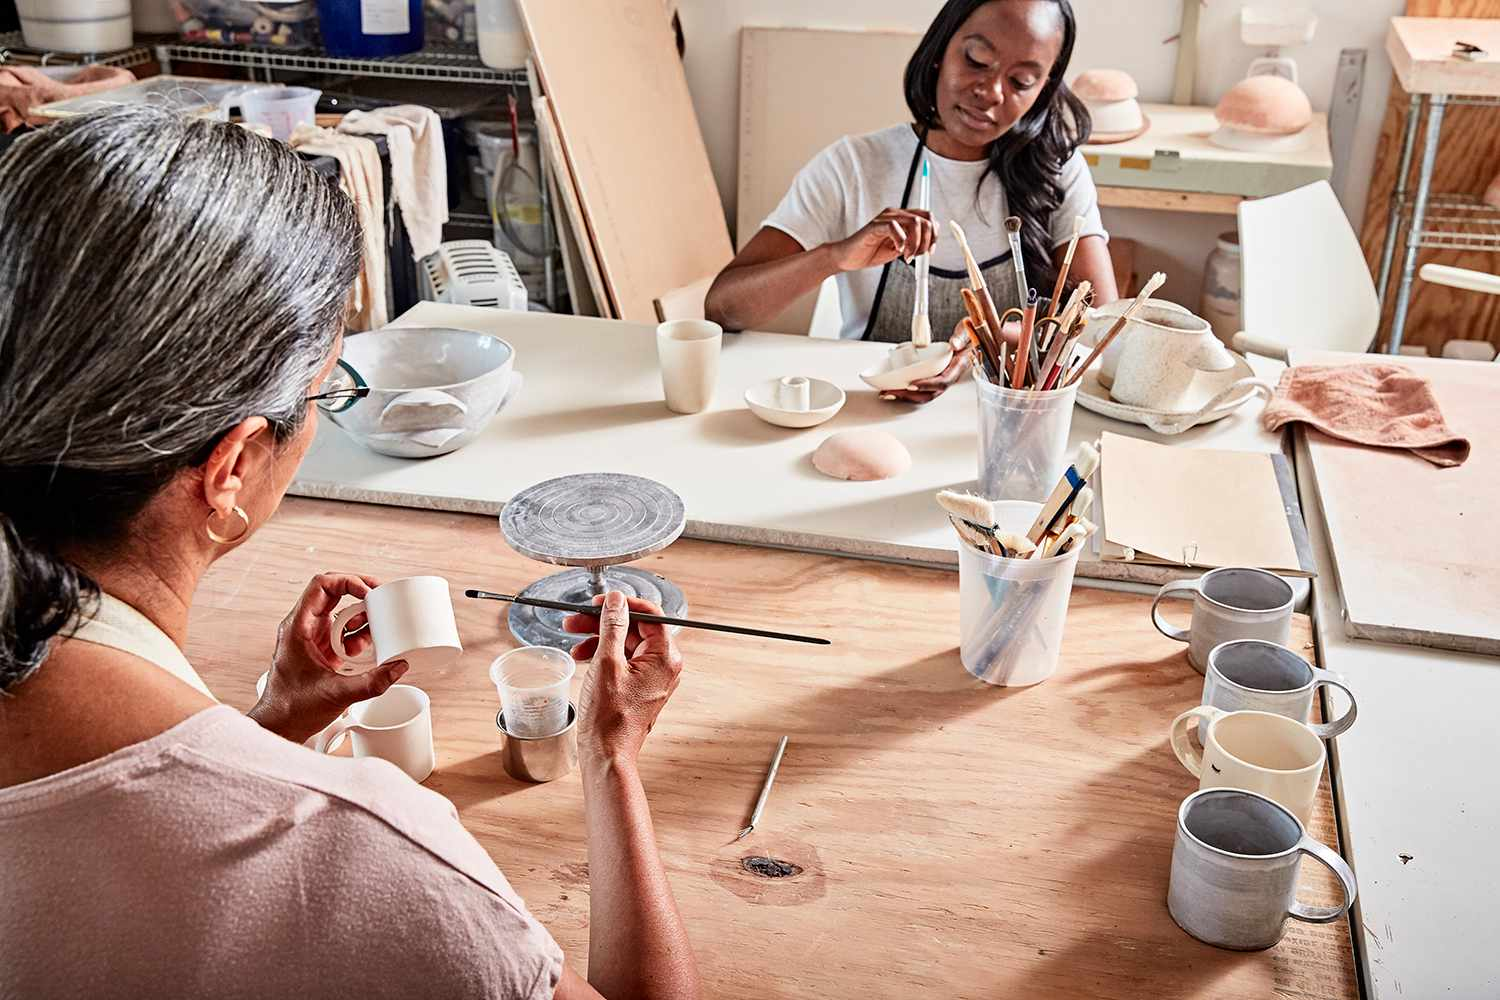 Potters in workshop painting pottery